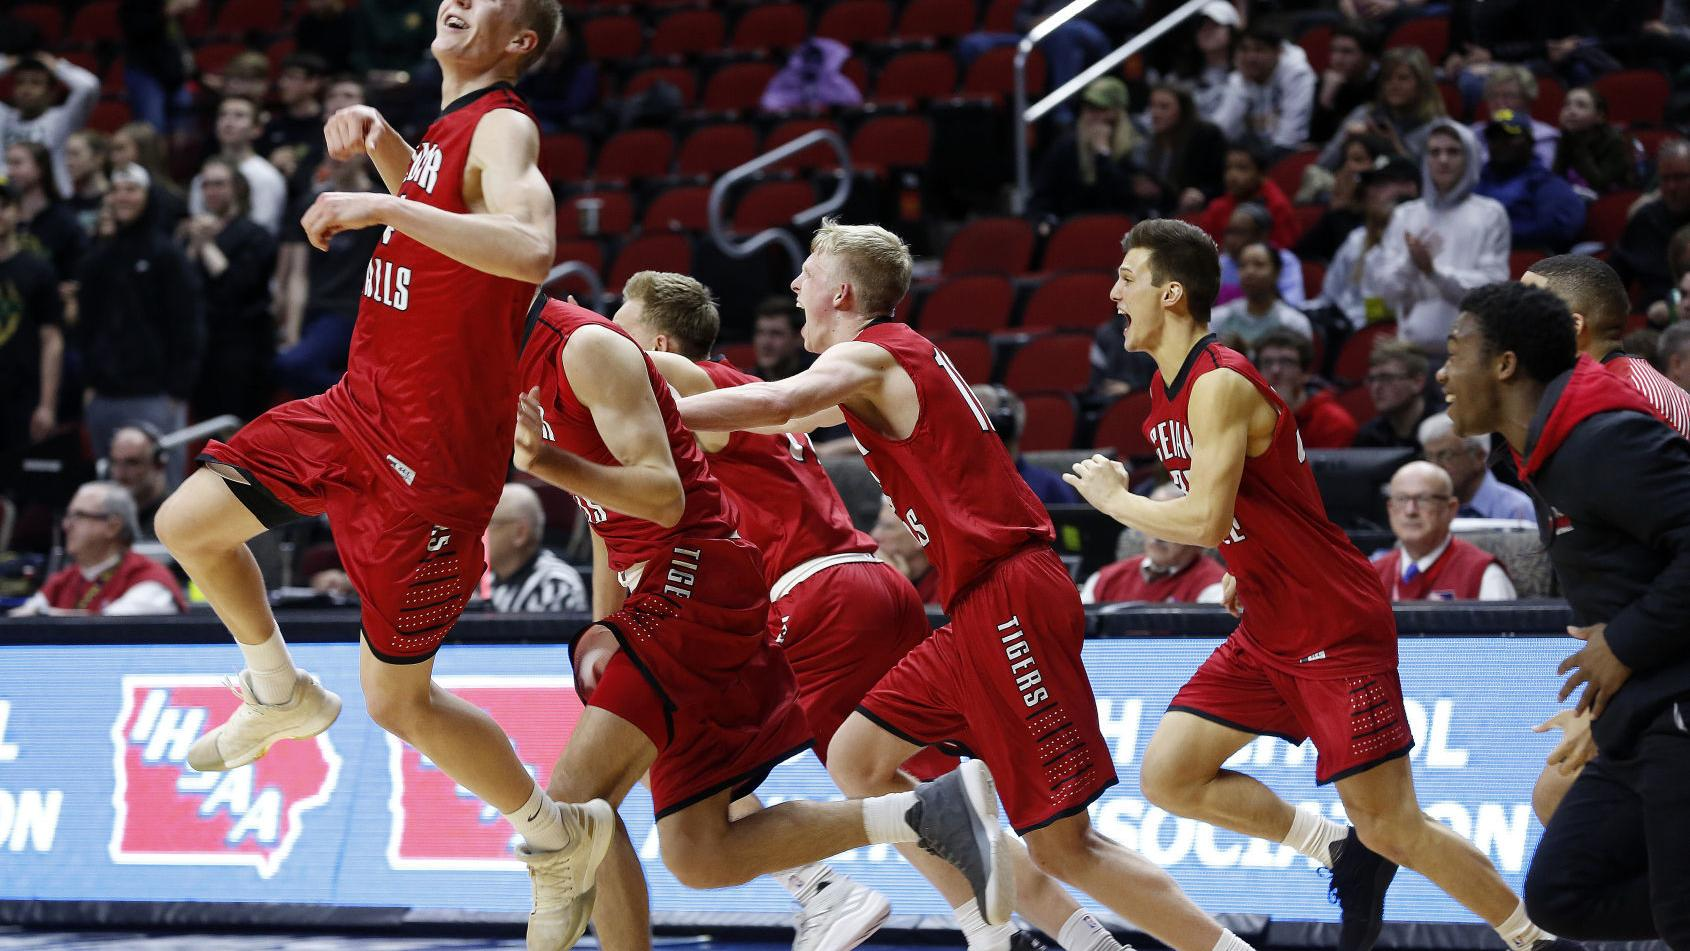 Boys' state basketball: Cedar Falls captures first state title in convincing fashion, 65-45